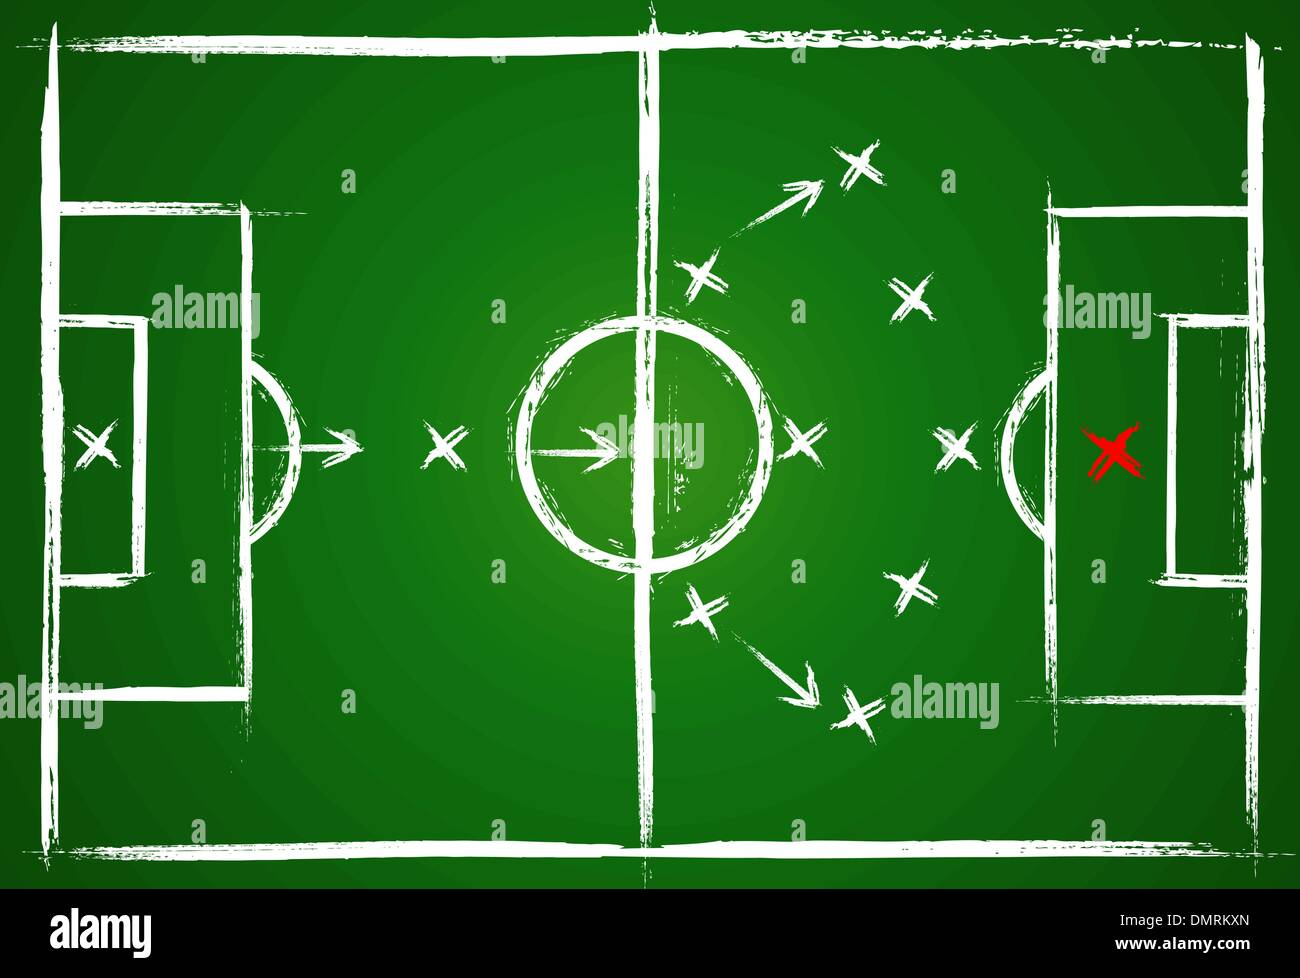 hight resolution of football positions teamwork strategy